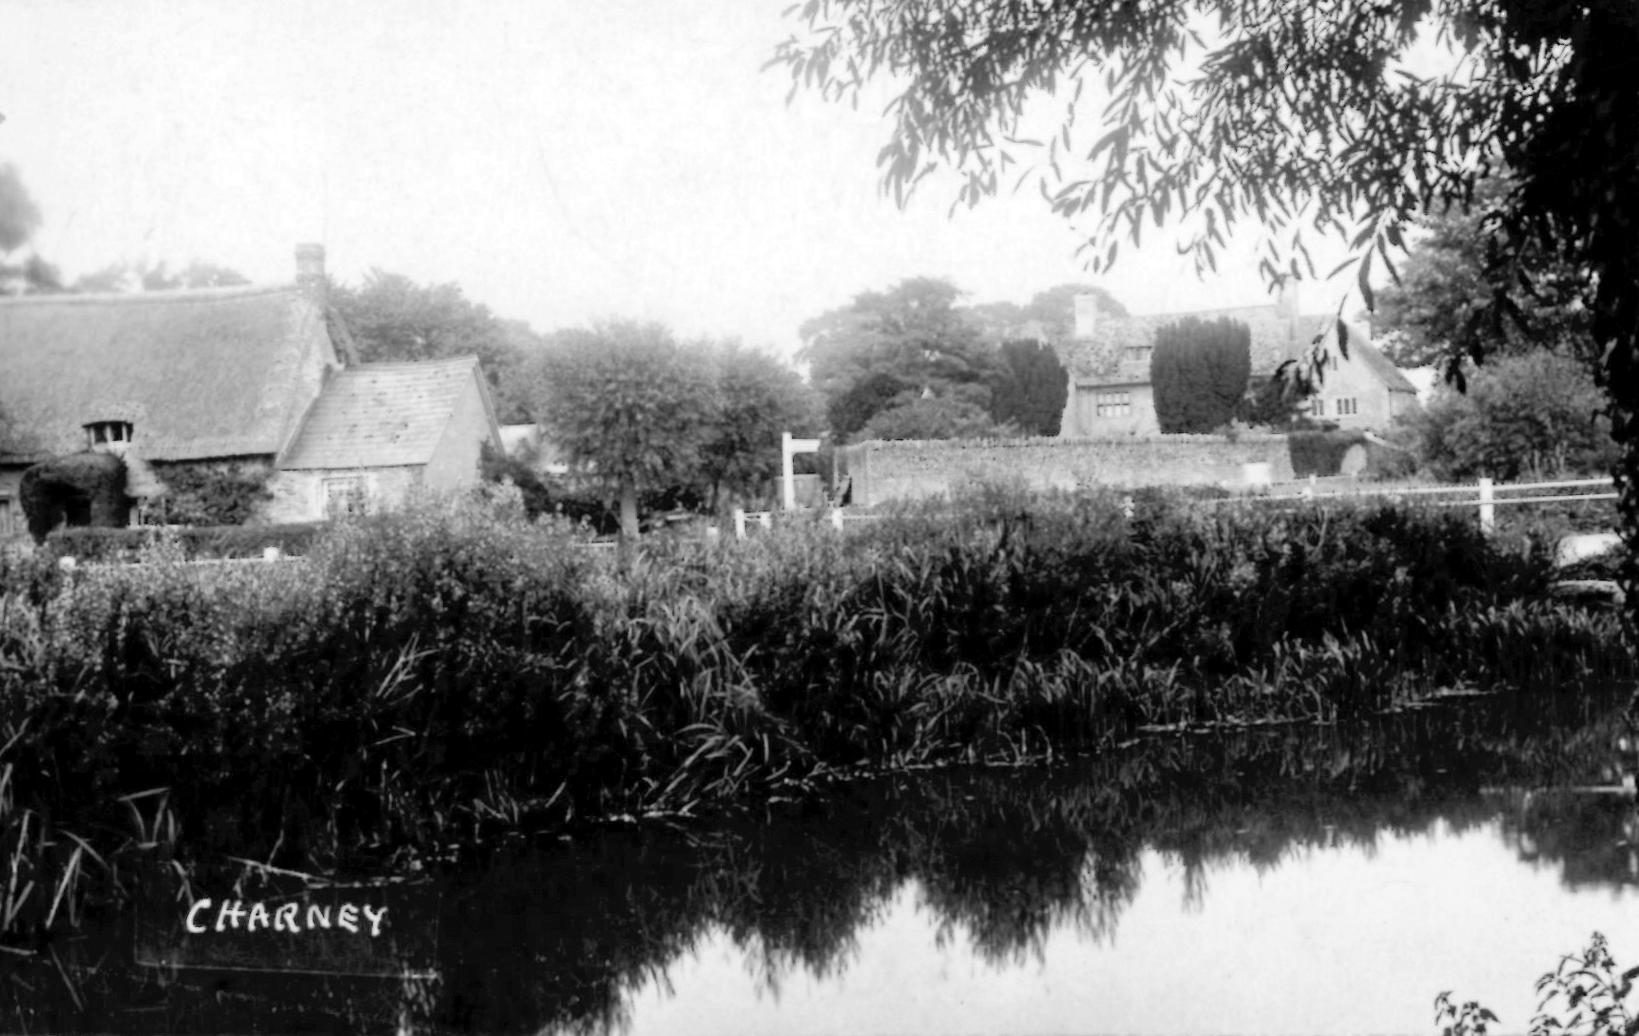 Postcard view of Charney and river and one of the thatched cottages at the entrance to the village to the left of the Church. No date.